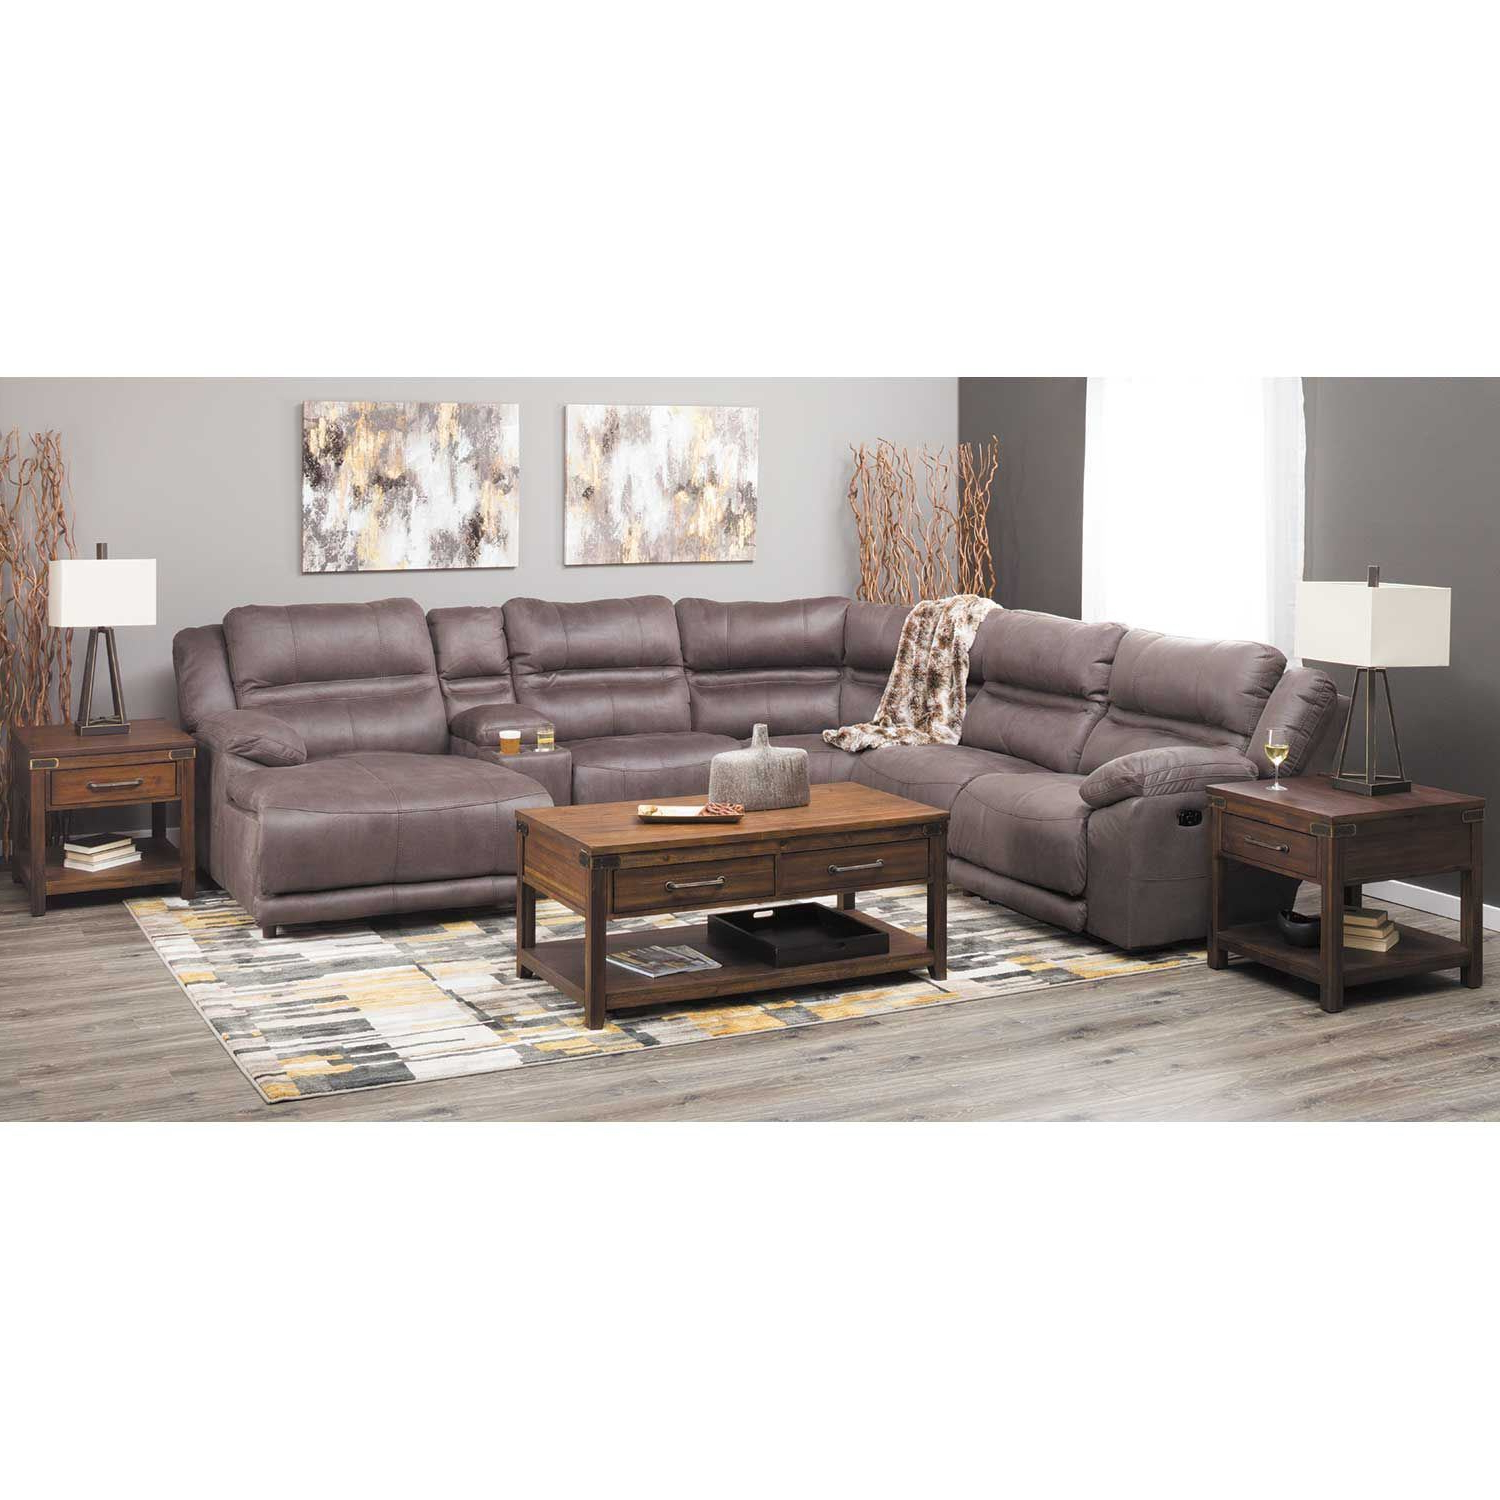 Famous Braxton 6 Piece Power Reclining Sectional With Adjustable Headrest With Jackson 6 Piece Power Reclining Sectionals (View 17 of 20)